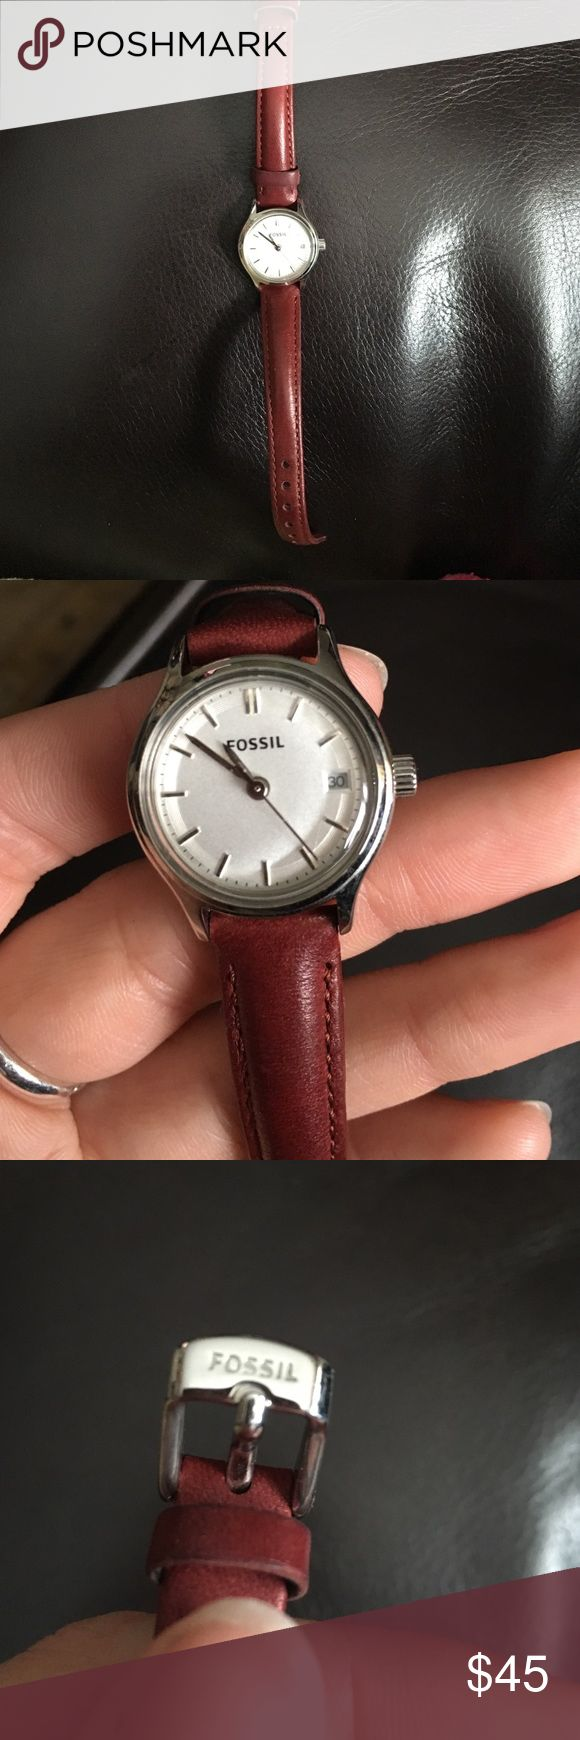 Women's Fossil watch Fossil watch in deep red color. Never worn - like new condition. Has a leather band with adjustable holes to fit any size wrist. Fossil Accessories Watches